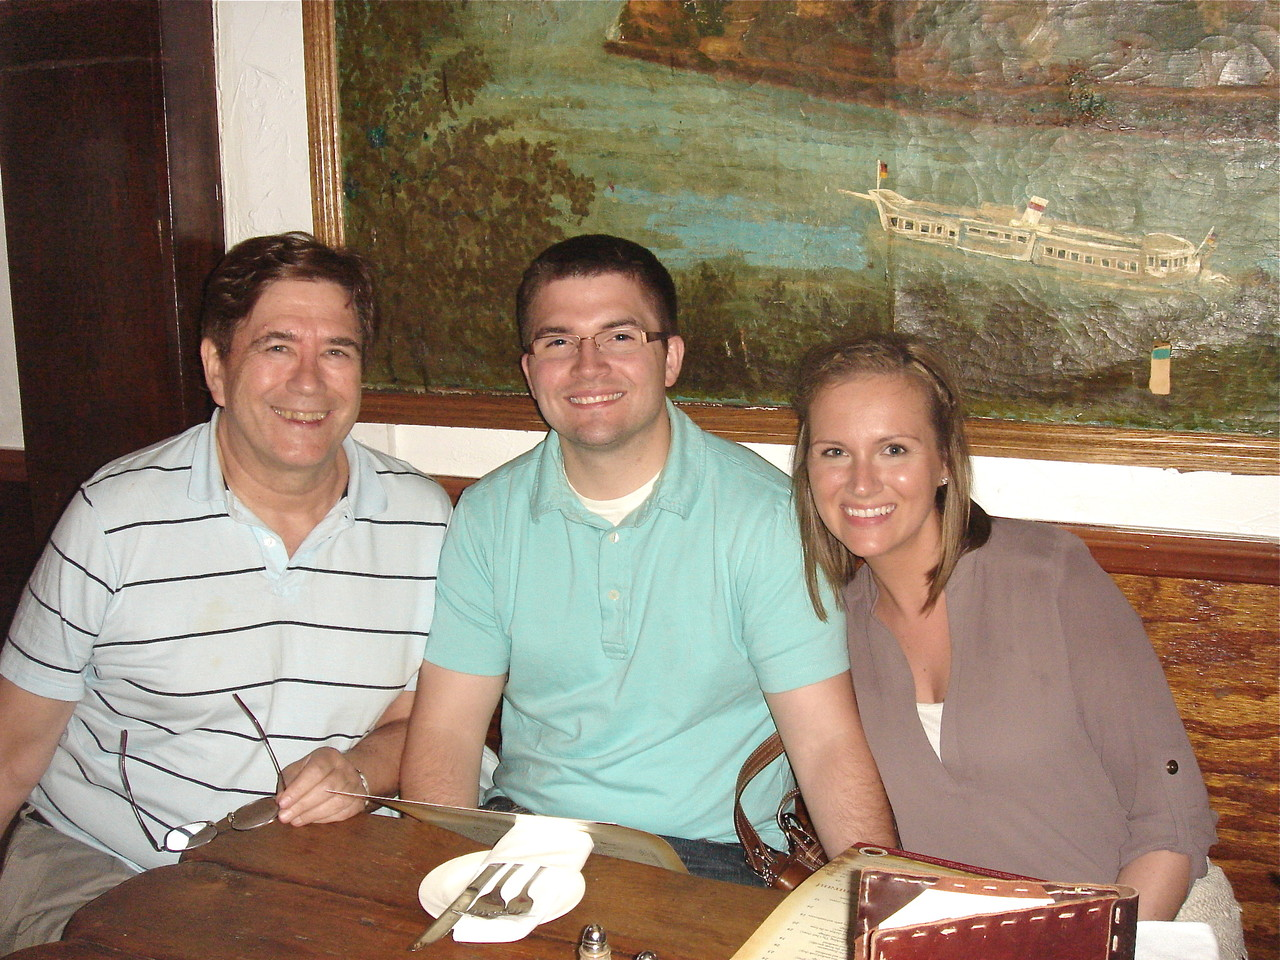 John, Jonathan & Katie at the Heidelberg Restaurant 6-20-2013